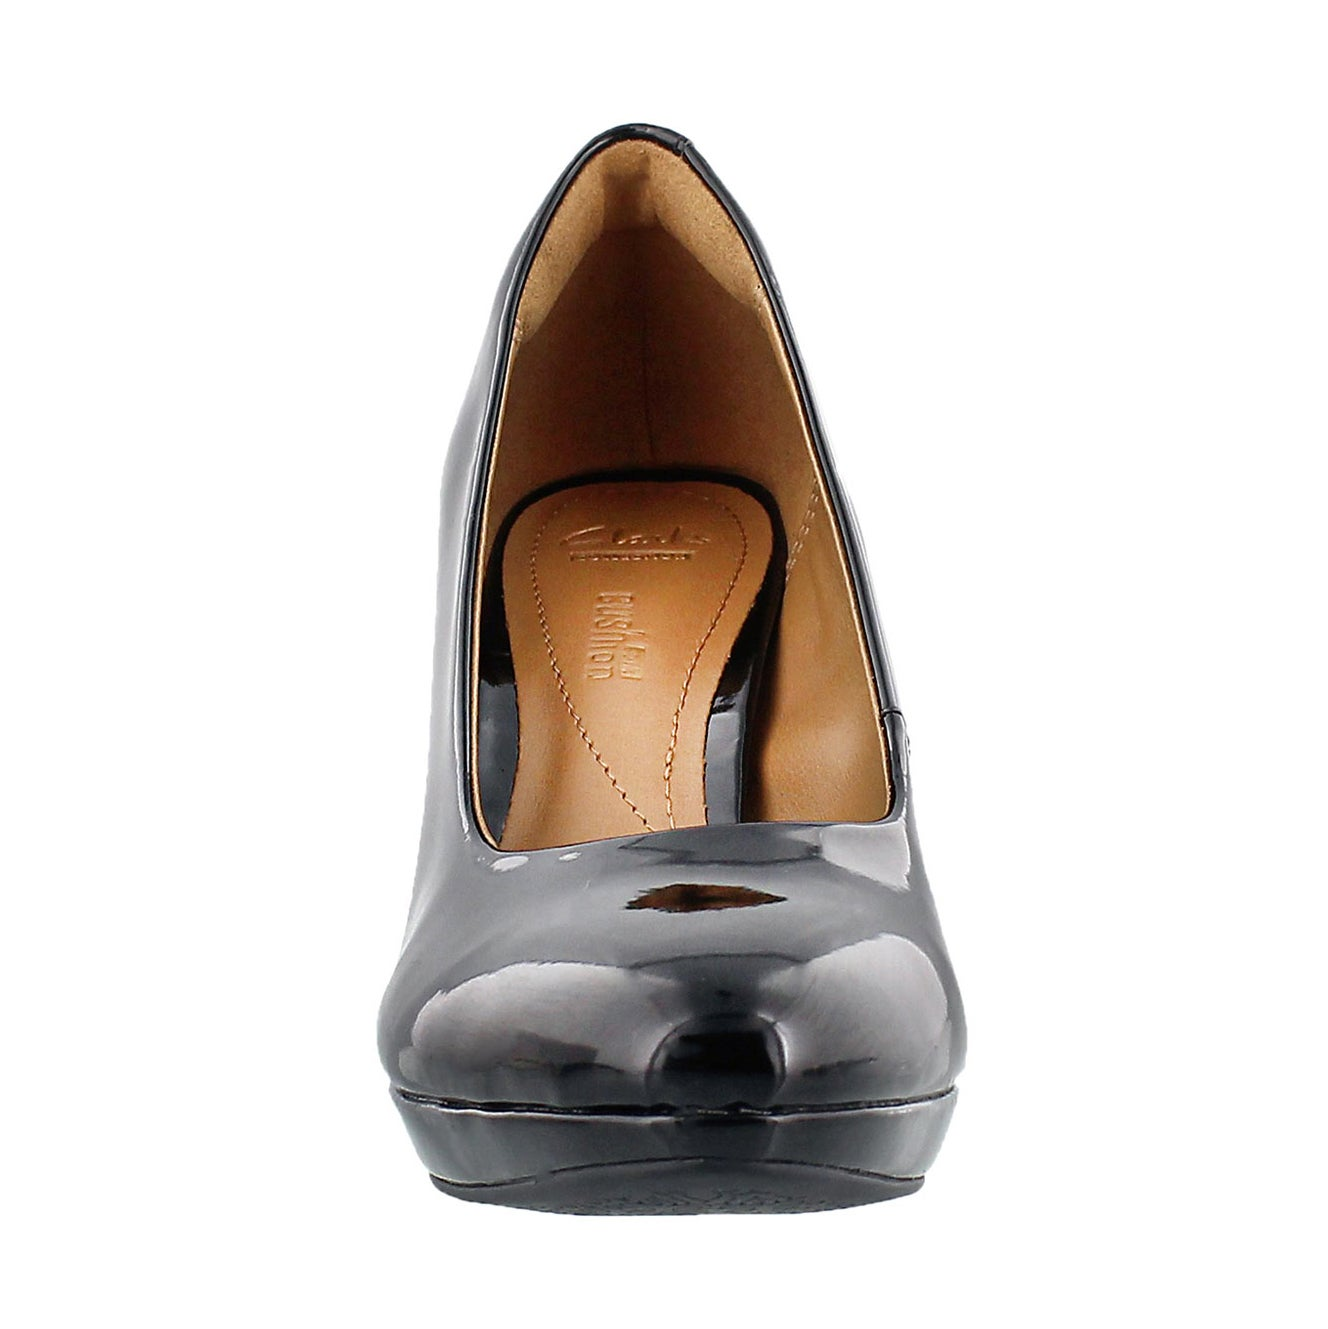 Lds Brier Dolly black patent dress heel